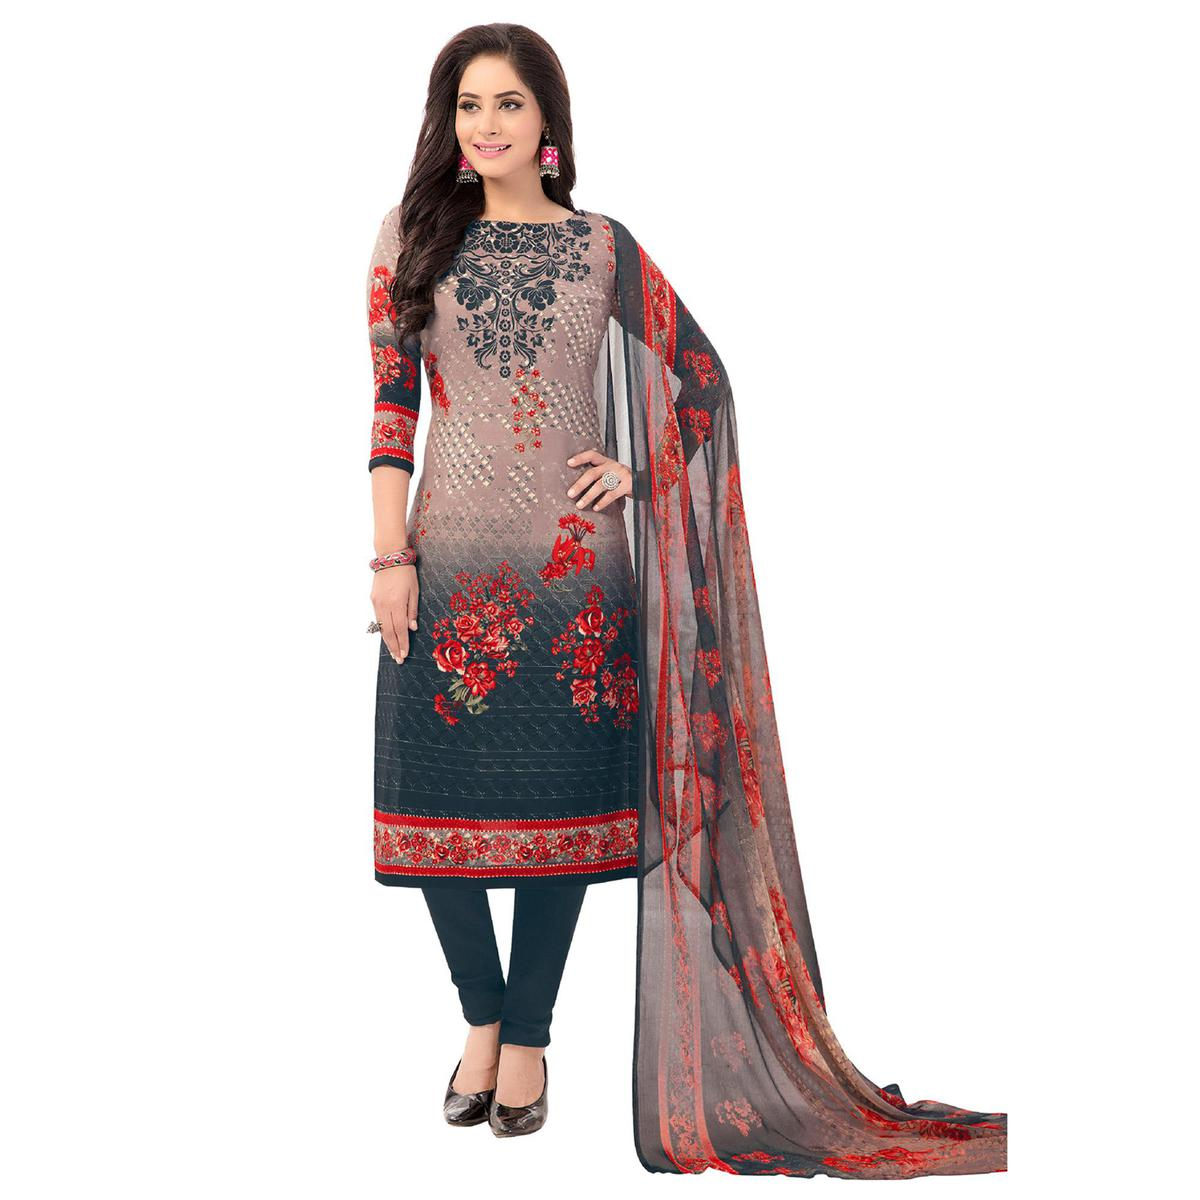 Salwar Studio - Women's  Grey & Red Synthetic Printed Unstitch Dress Material with Dupatta